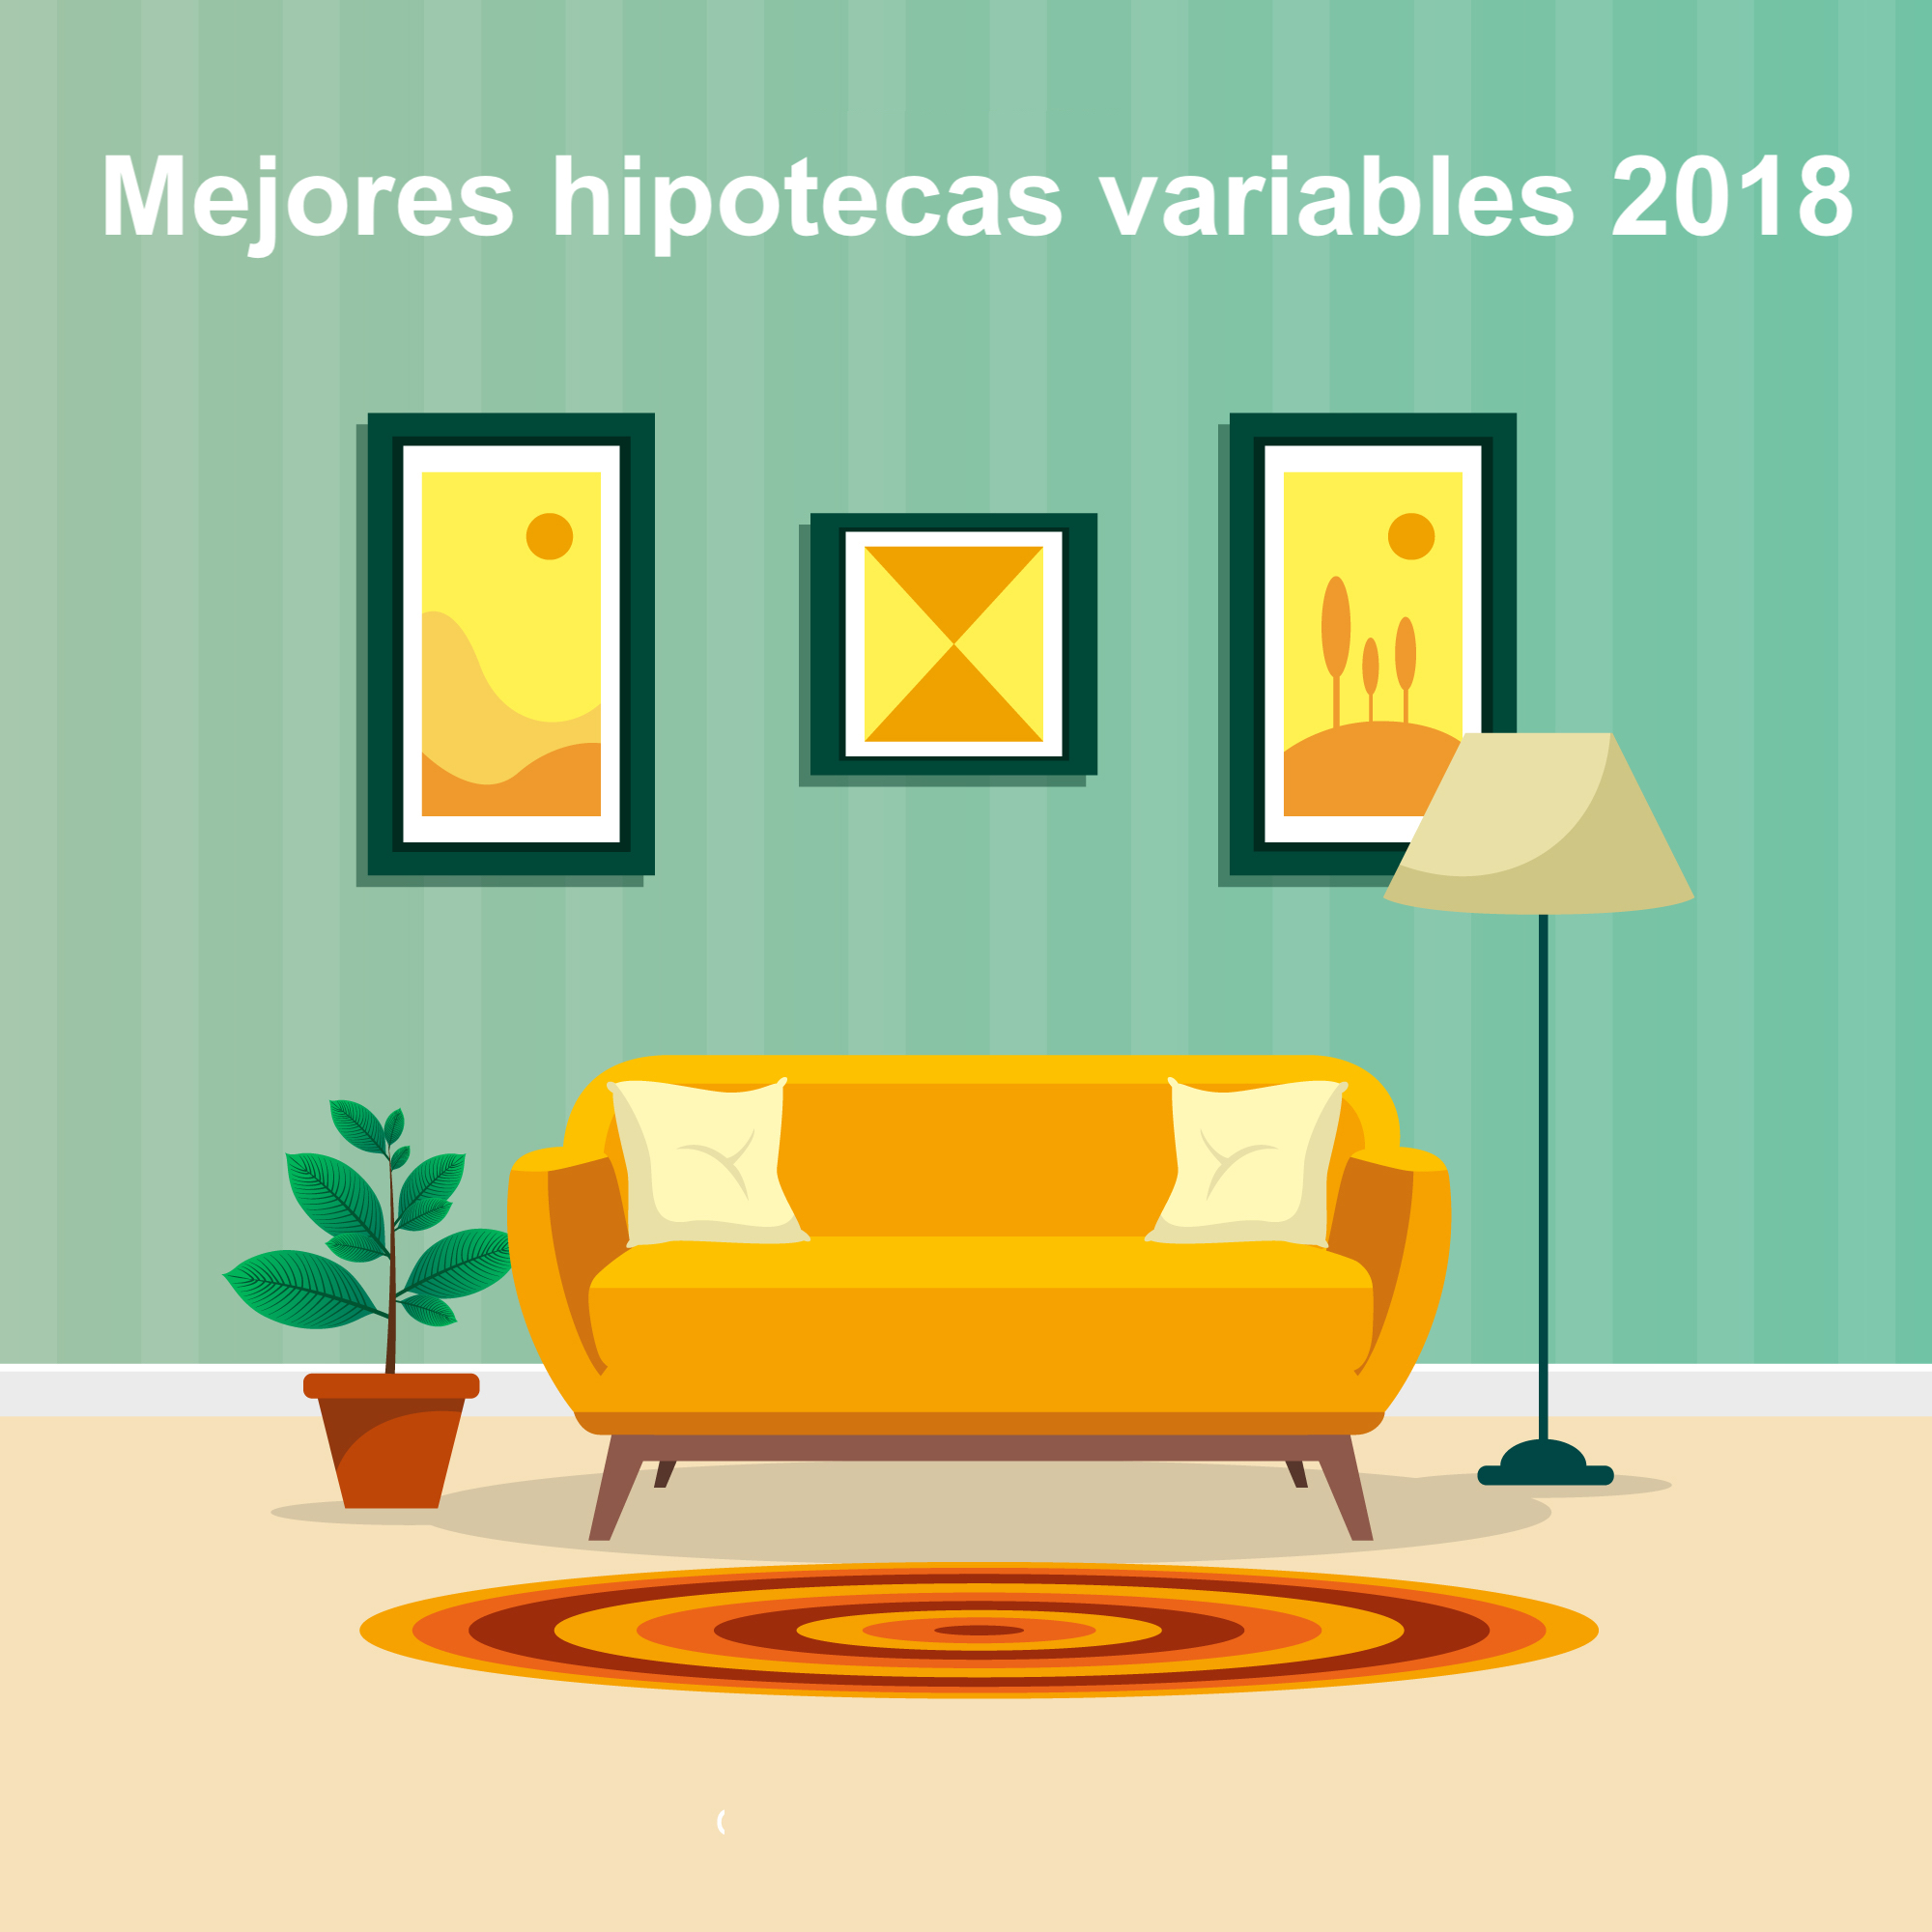 Mejores hipotecas variables 2018